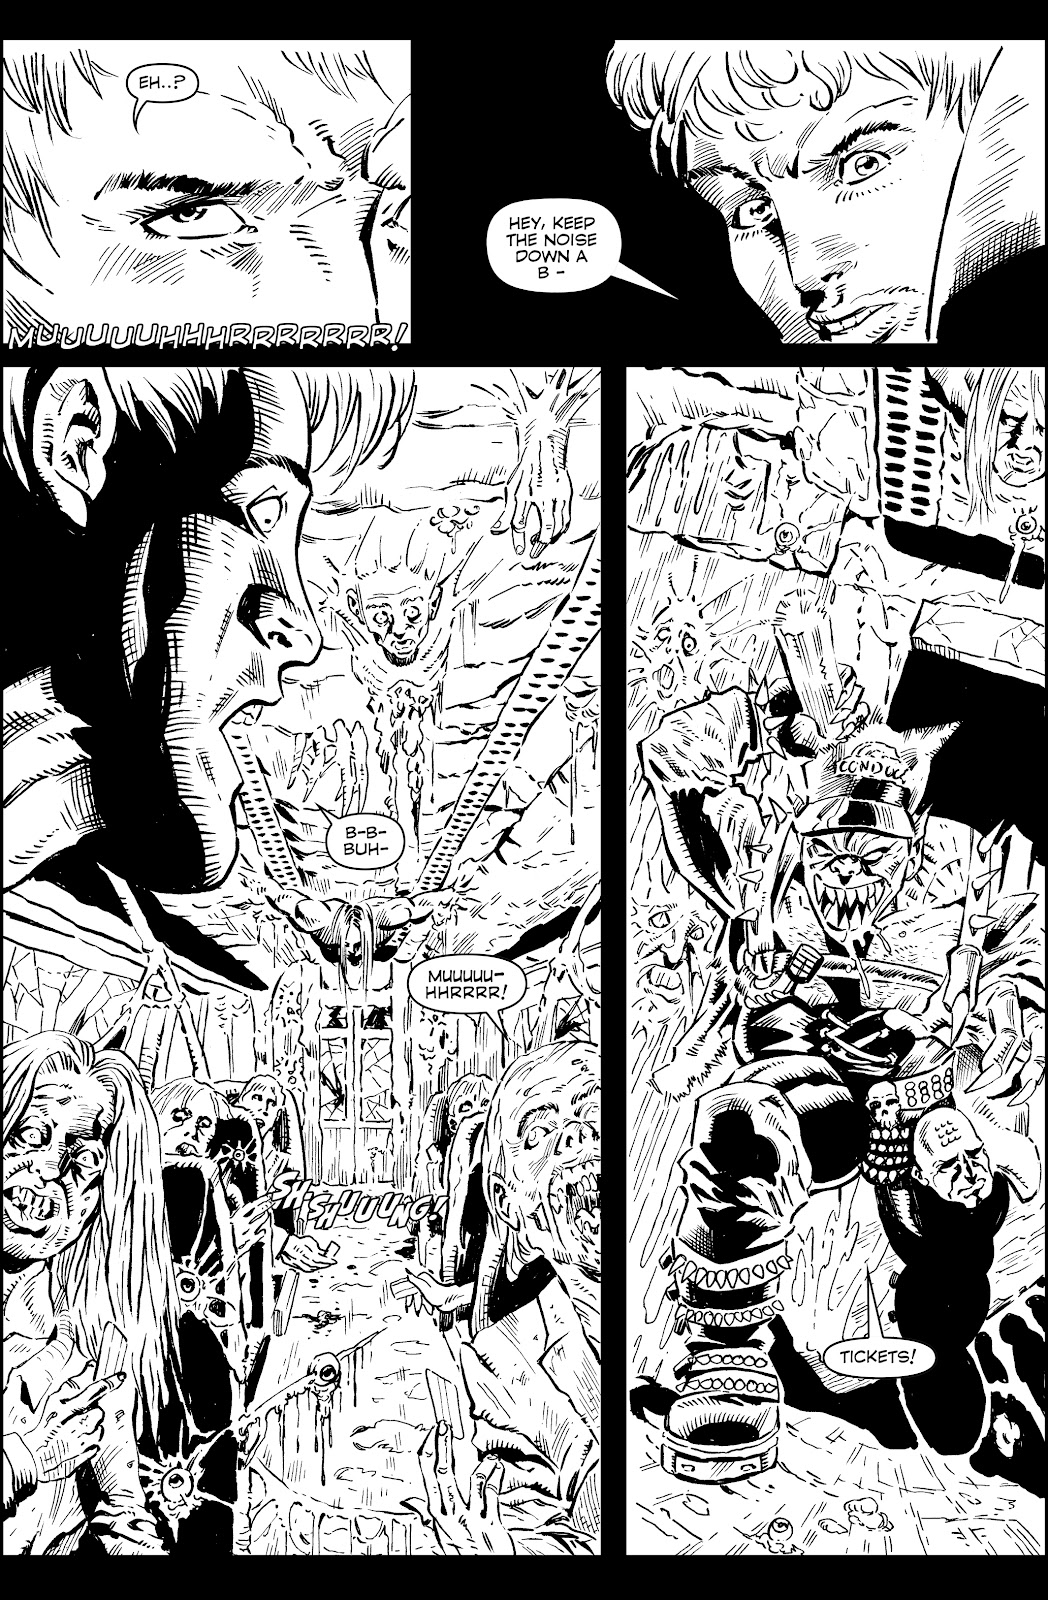 100% Biodegradable Issue #18 #18 - English 31